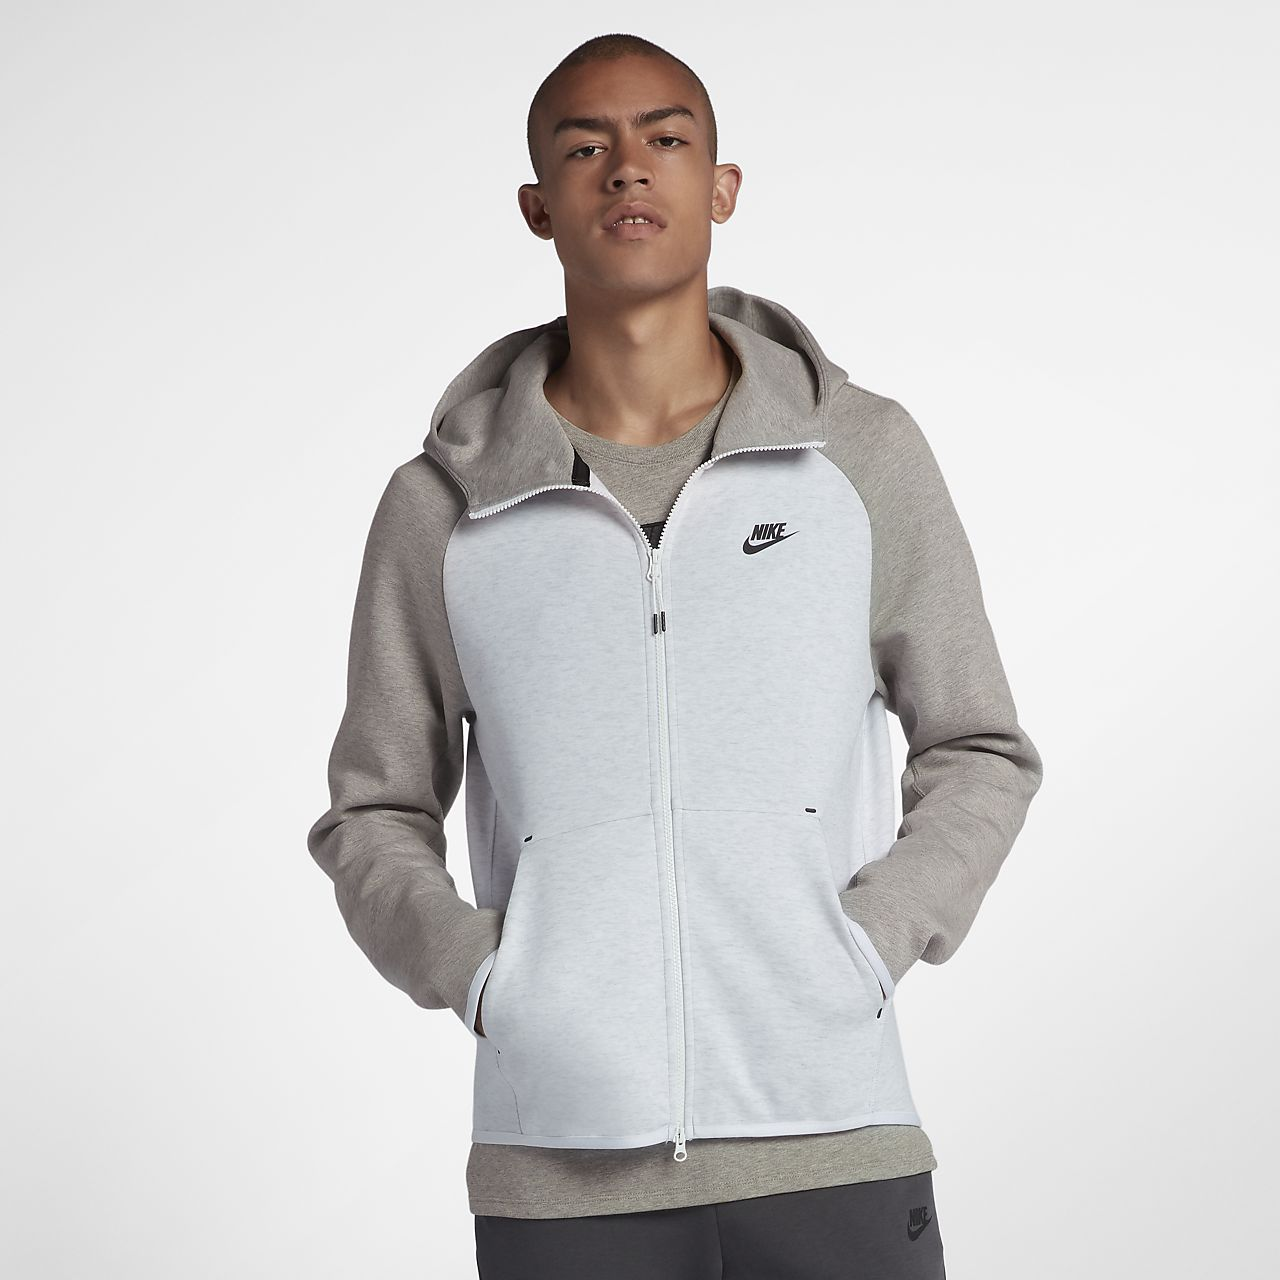 d22b712e025f Nike Sportswear Tech Fleece Men s Full-Zip Hoodie. Nike.com GB